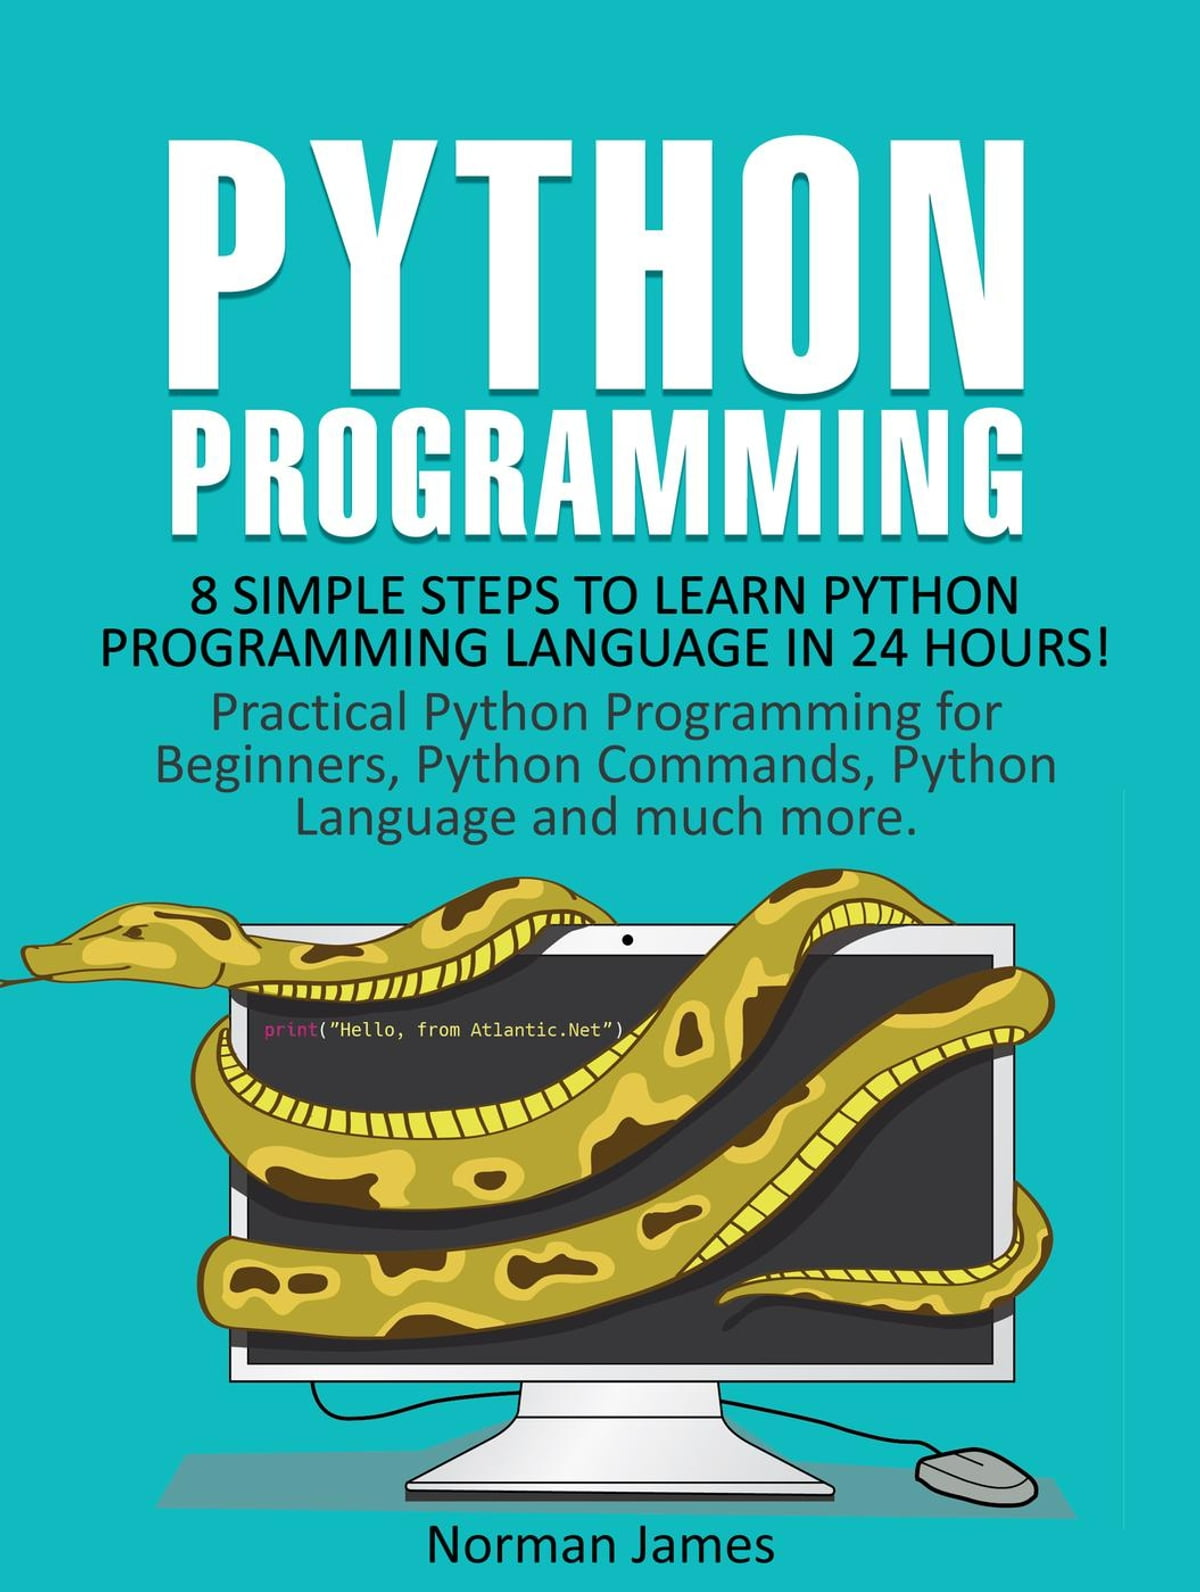 Python Tutorial | A Complete Guide to Learn Python ...